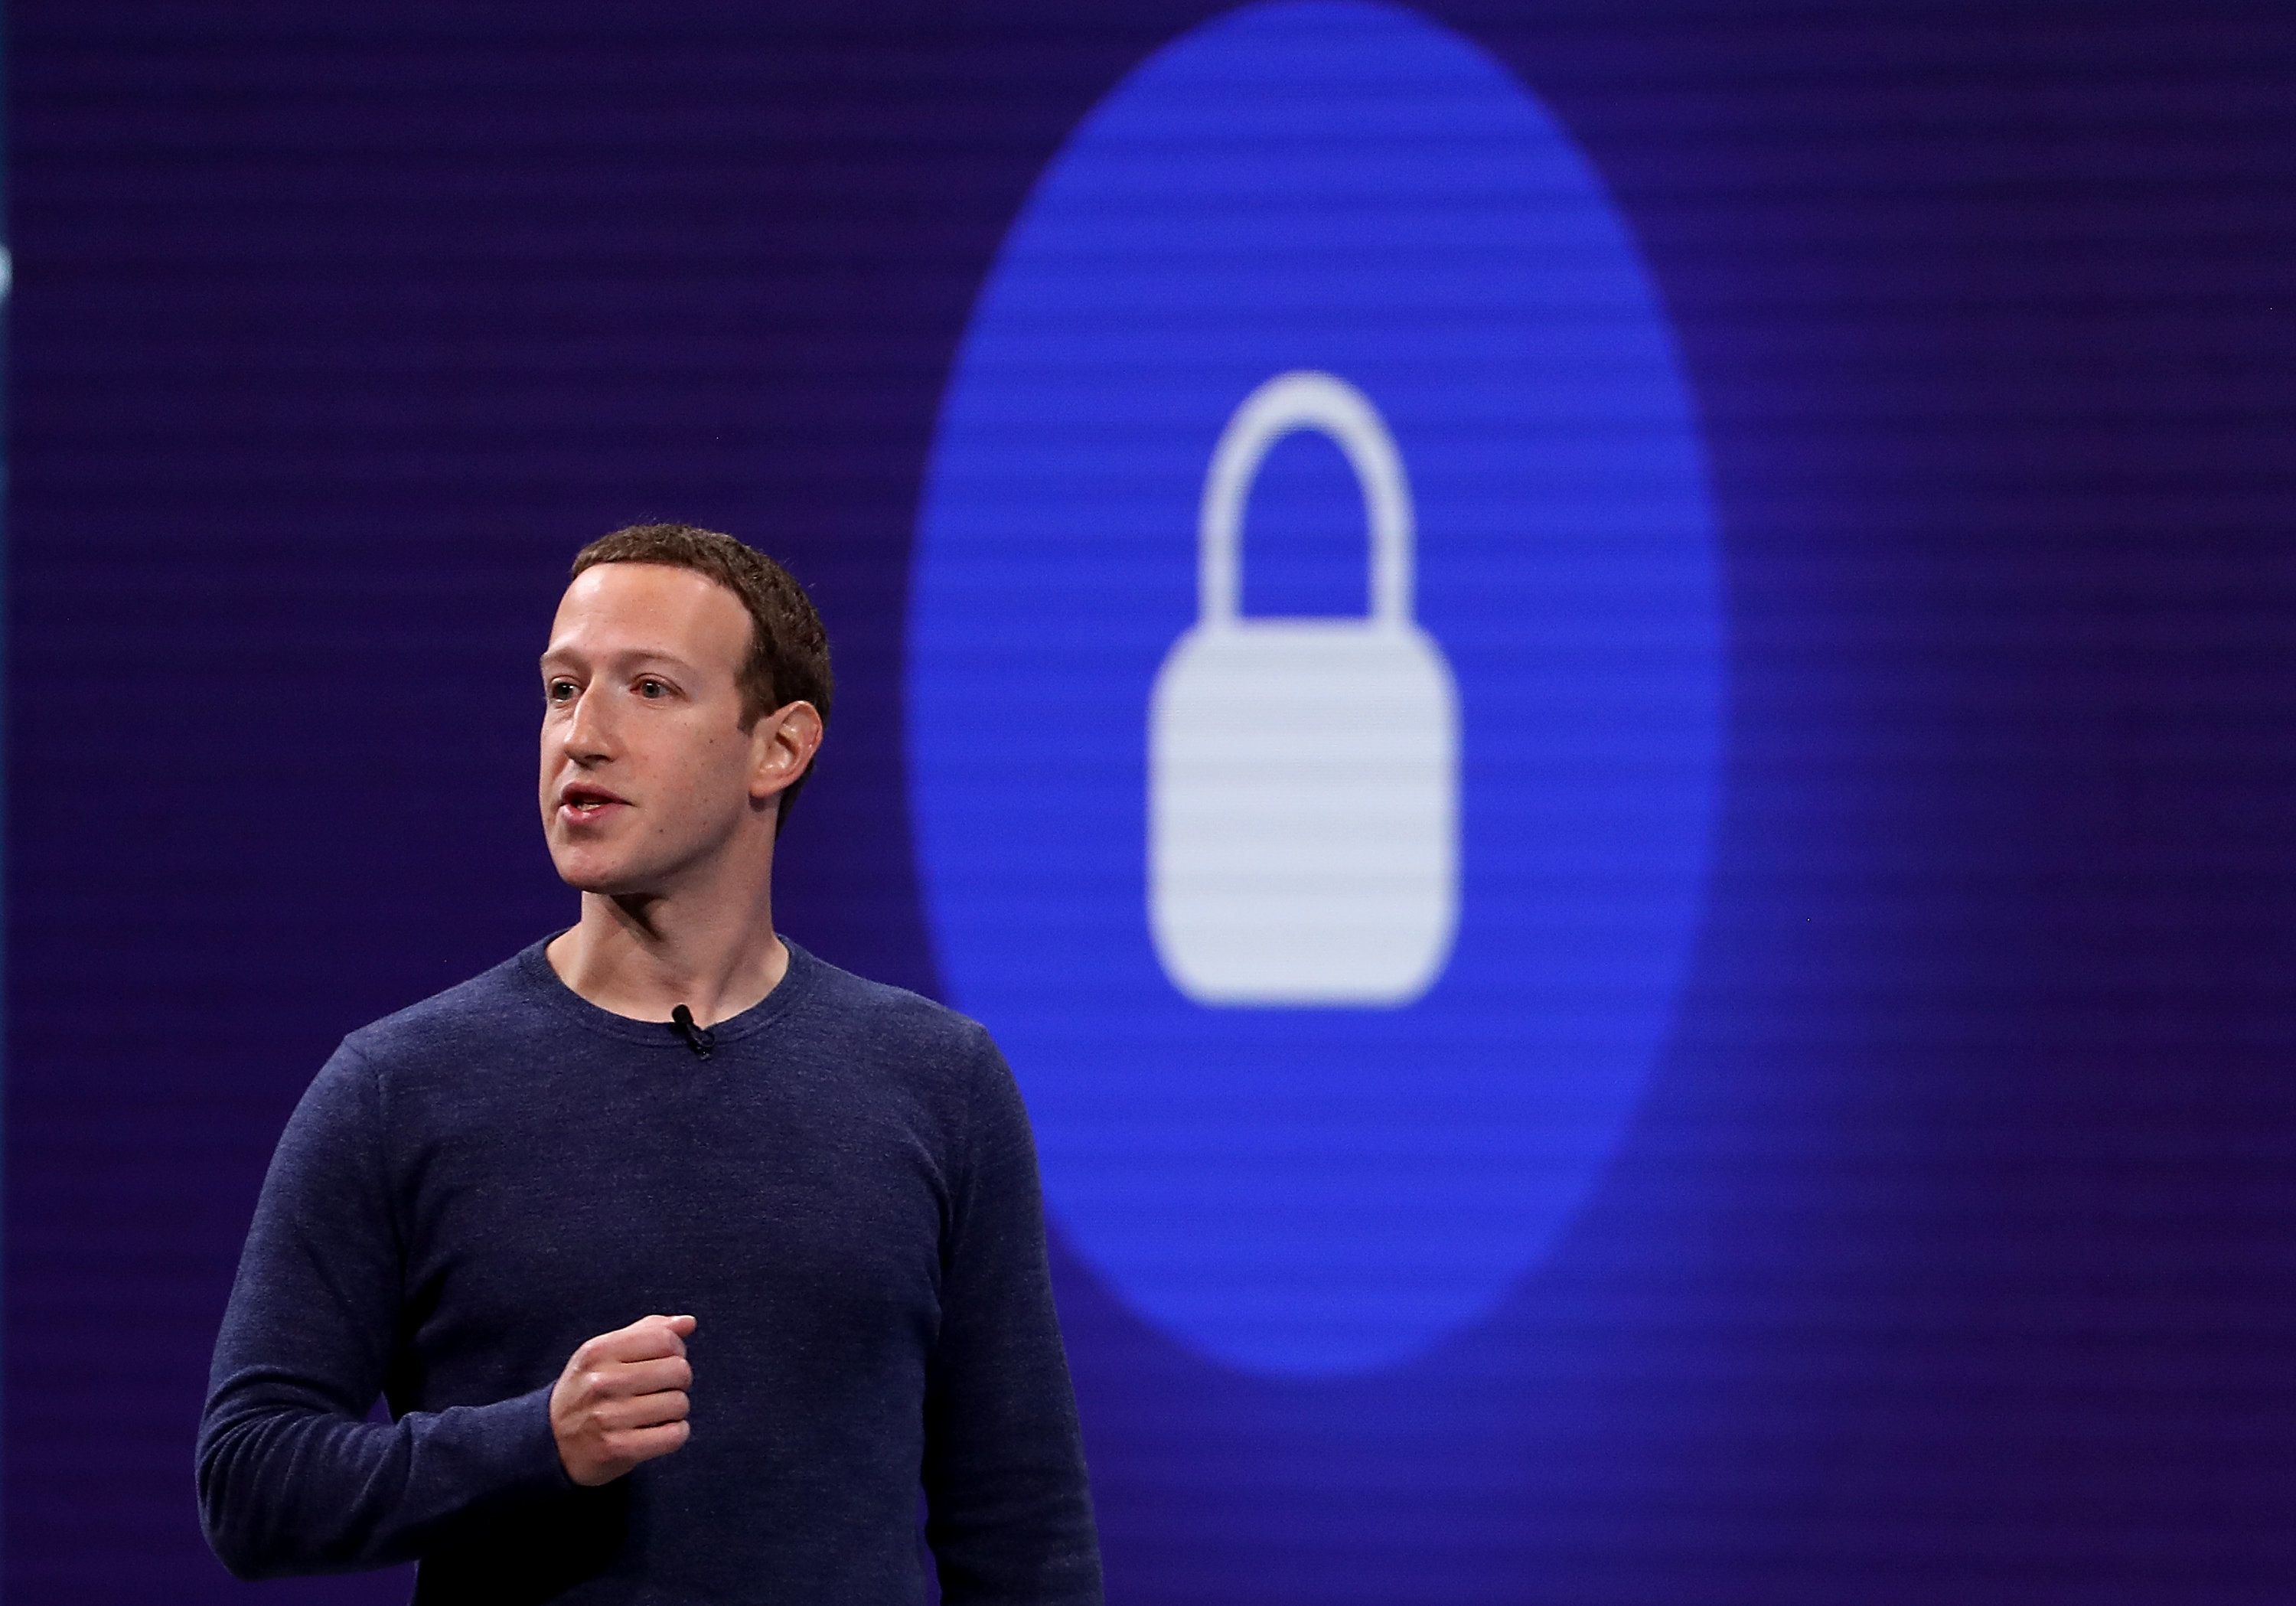 SAN JOSE, CA - MAY 01:  Facebook CEO Mark Zuckerberg speaks during the F8 Facebook Developers conference on May 1, 2018 in San Jose, California. Facebook CEO Mark Zuckerberg delivered the opening keynote to the FB Developer conference that runs through May 2.  (Photo by Justin Sullivan/Getty Images)